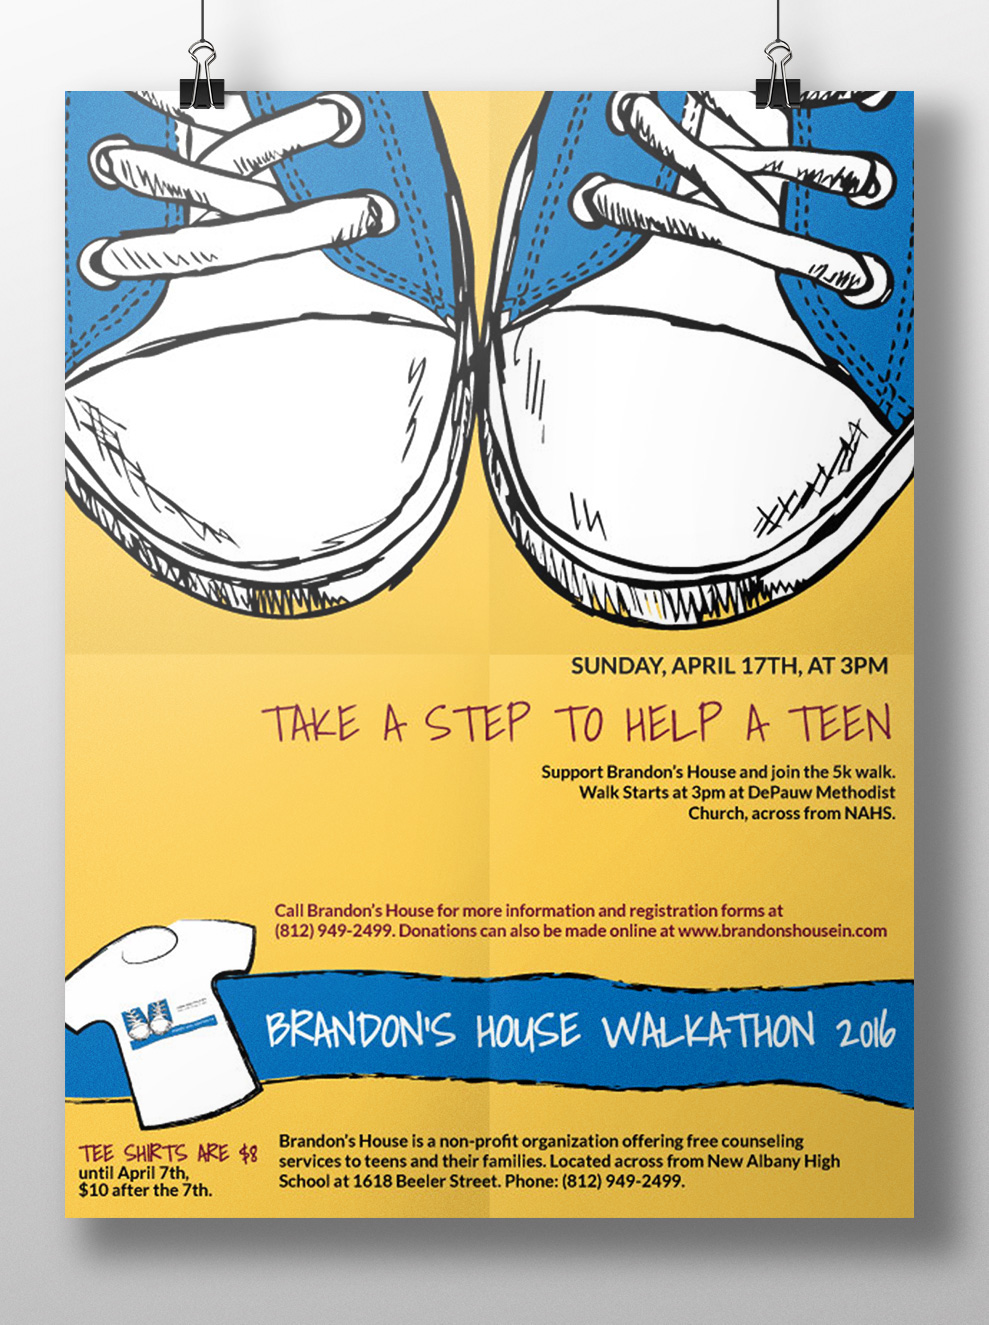 brandons house walkathon flyer mailer tshirt on behance